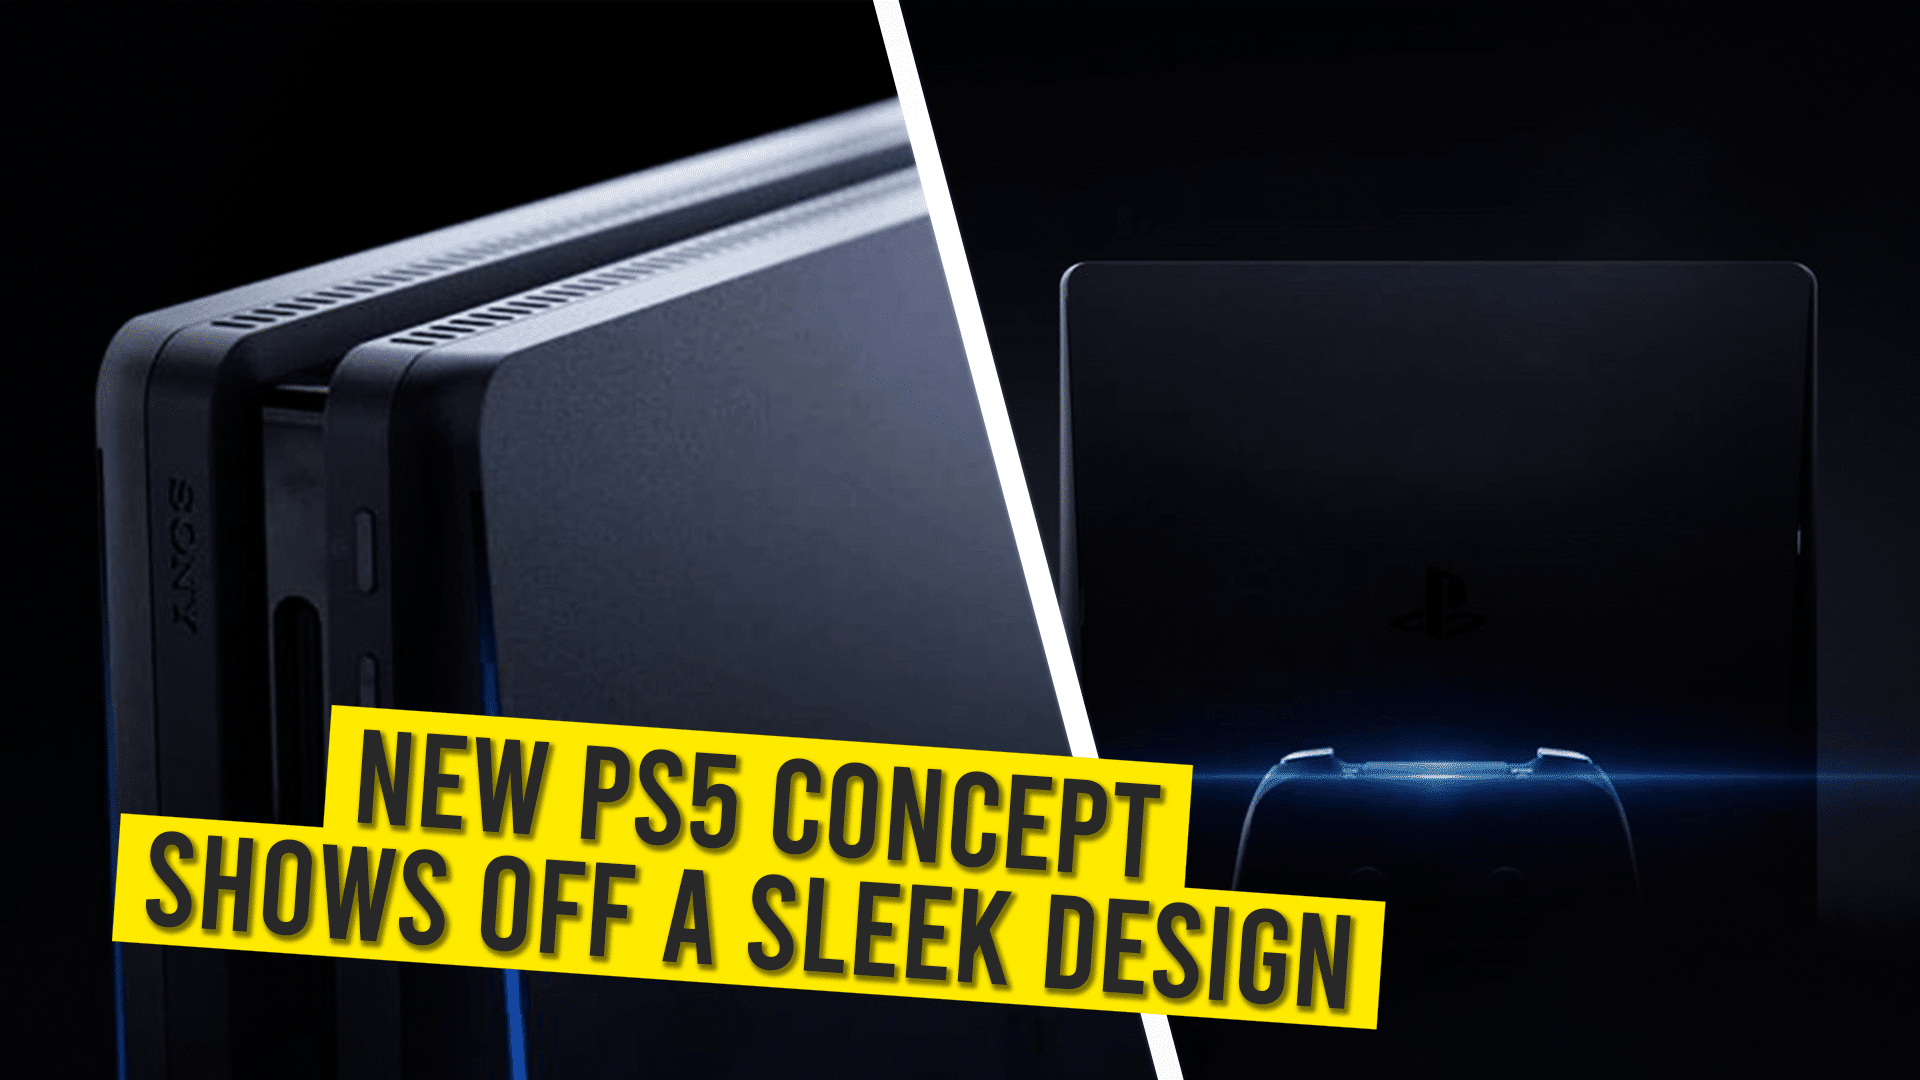 Concept design of upcoming PS5